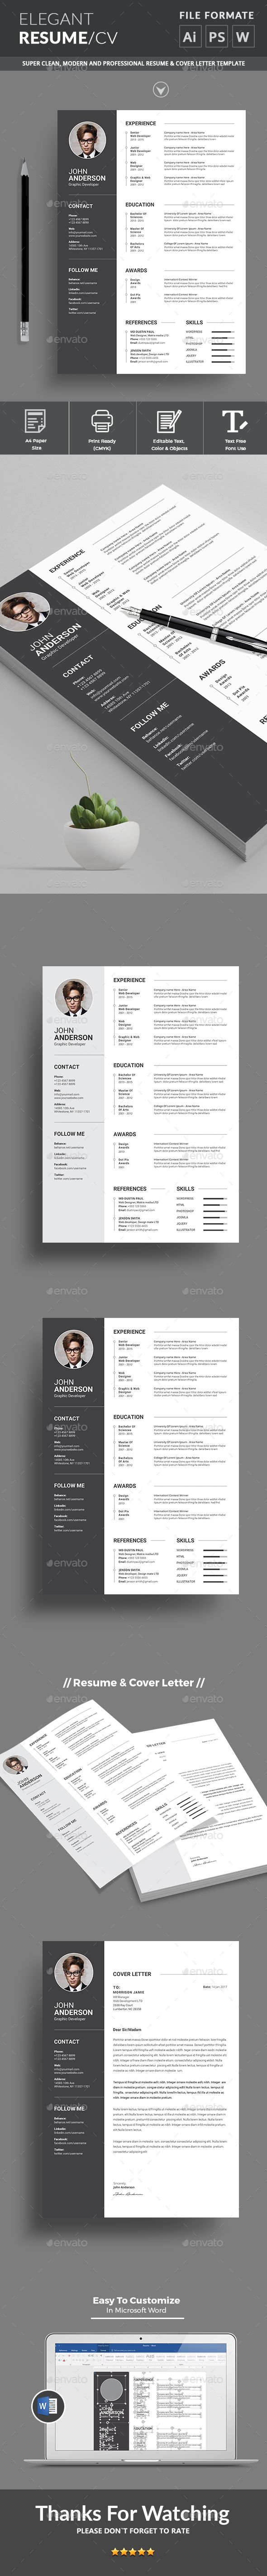 Resume 19 best Graphic Designs images on